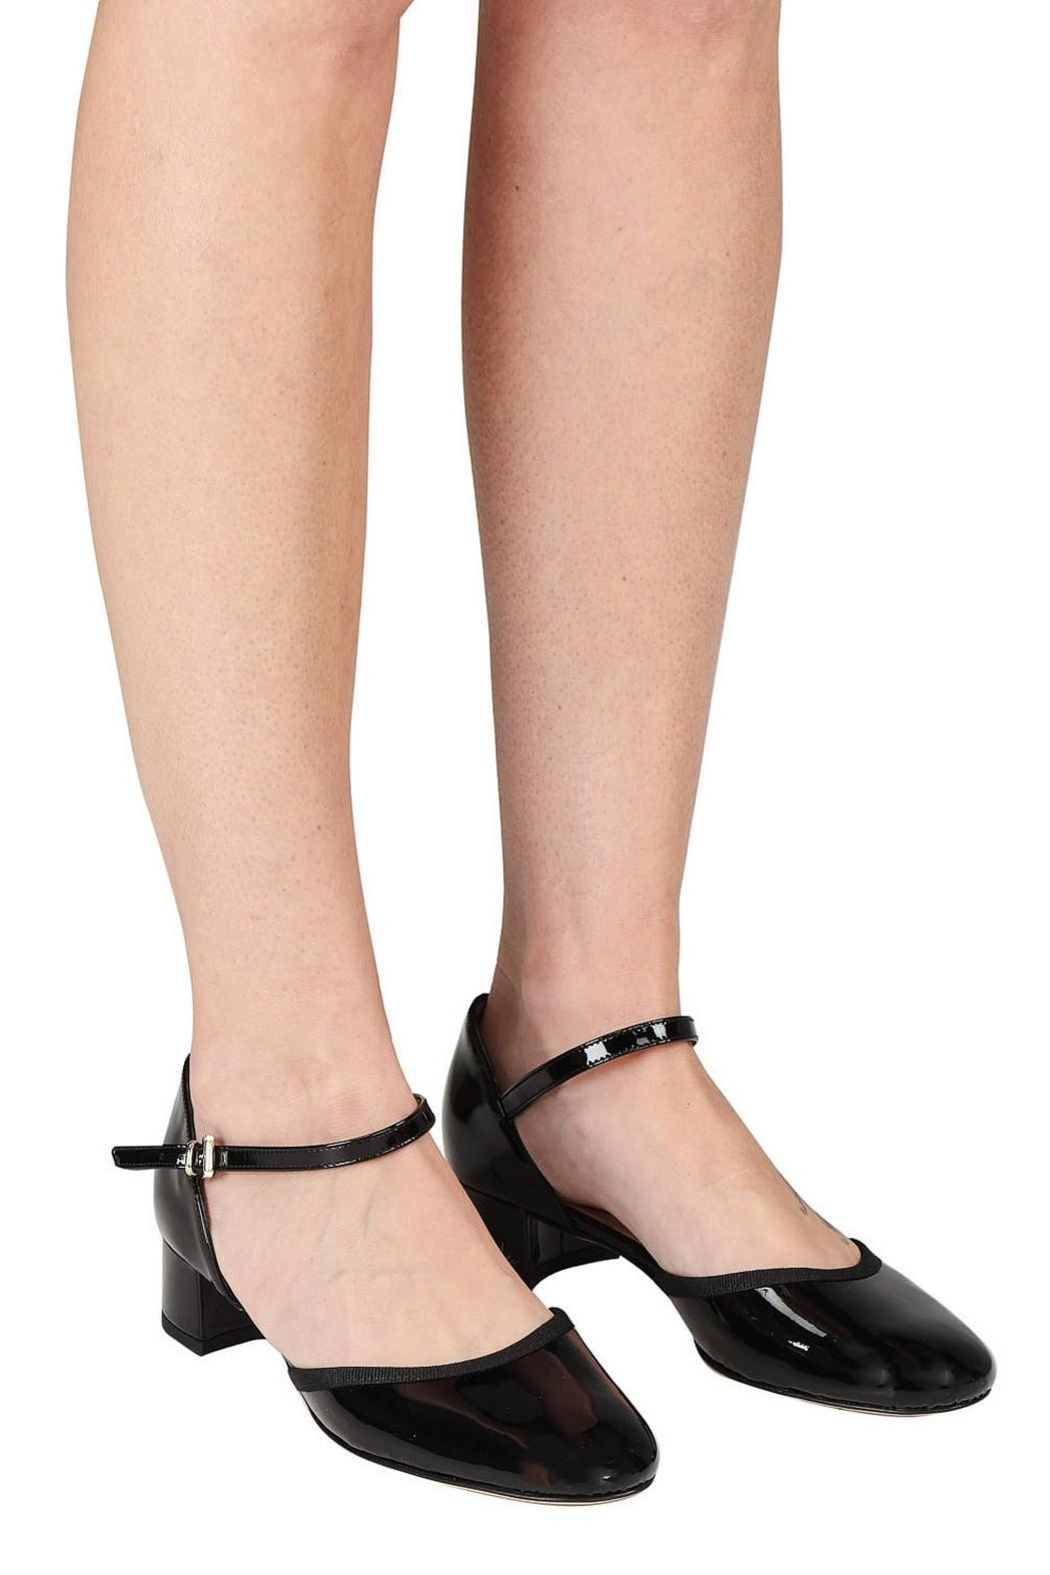 Pascucci Patent Low-Heel Mary-Jane - Back Cropped Image